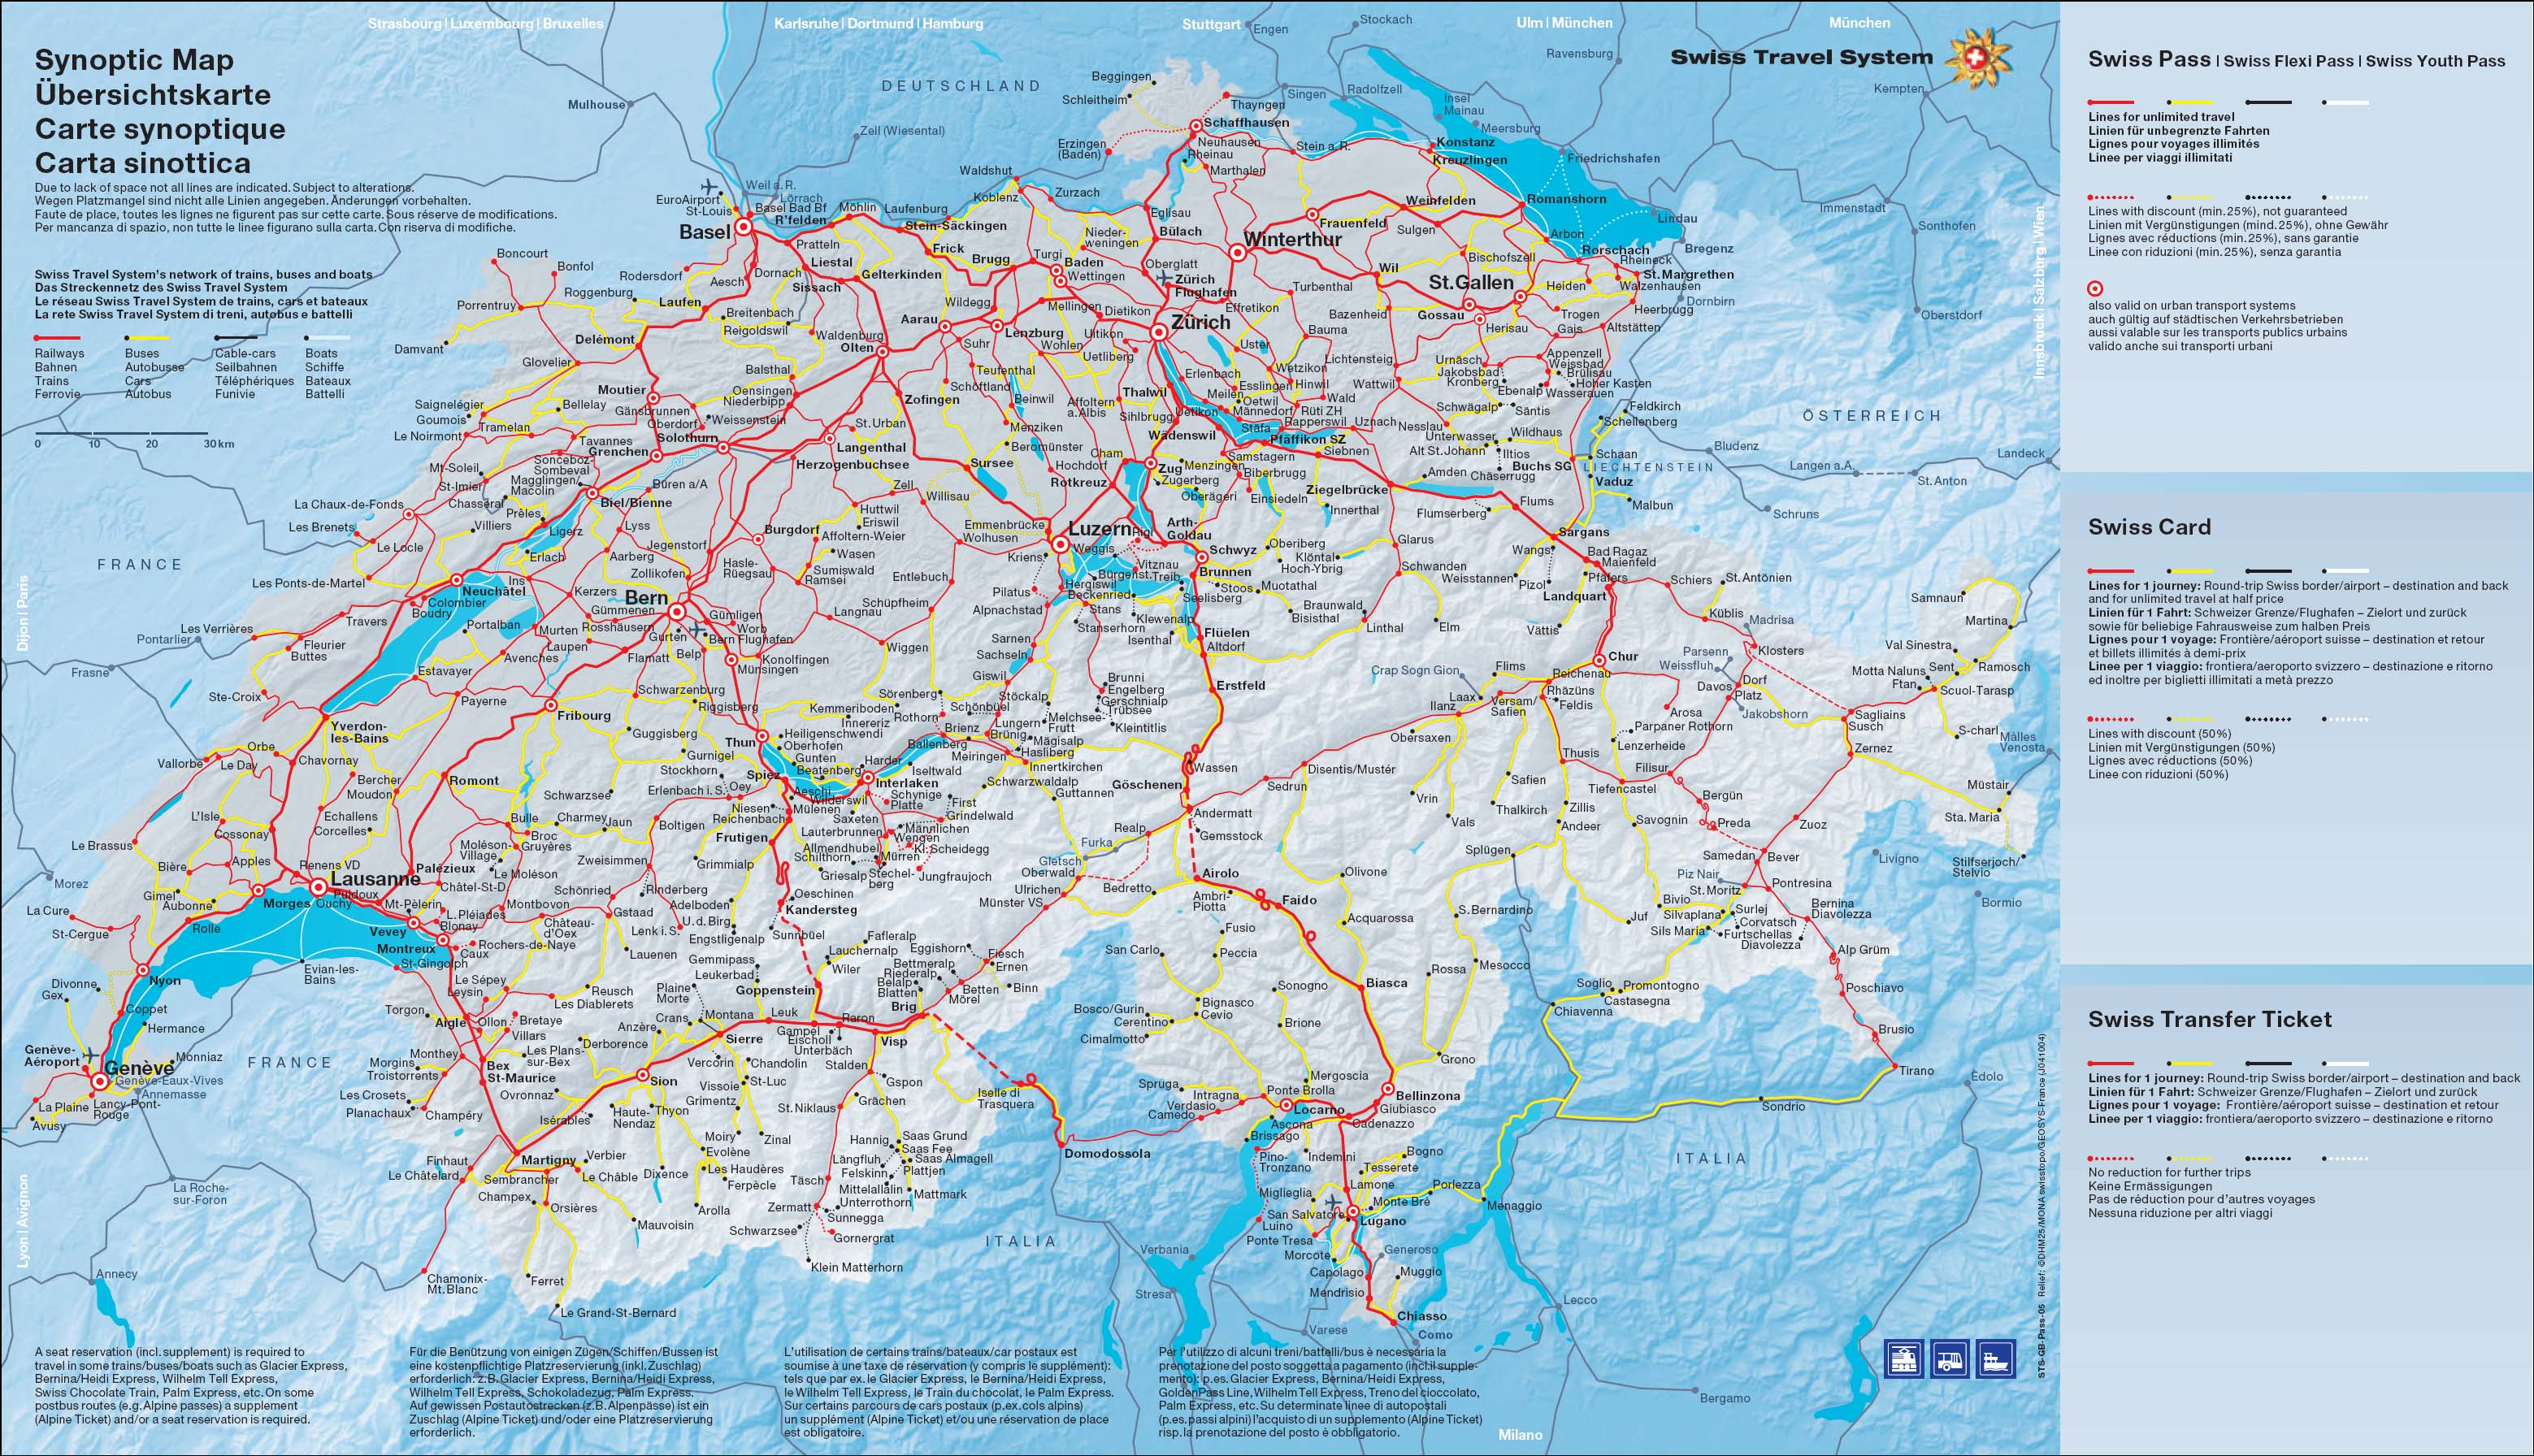 Sunny Photo Studiomain – Swiss Travel System Map